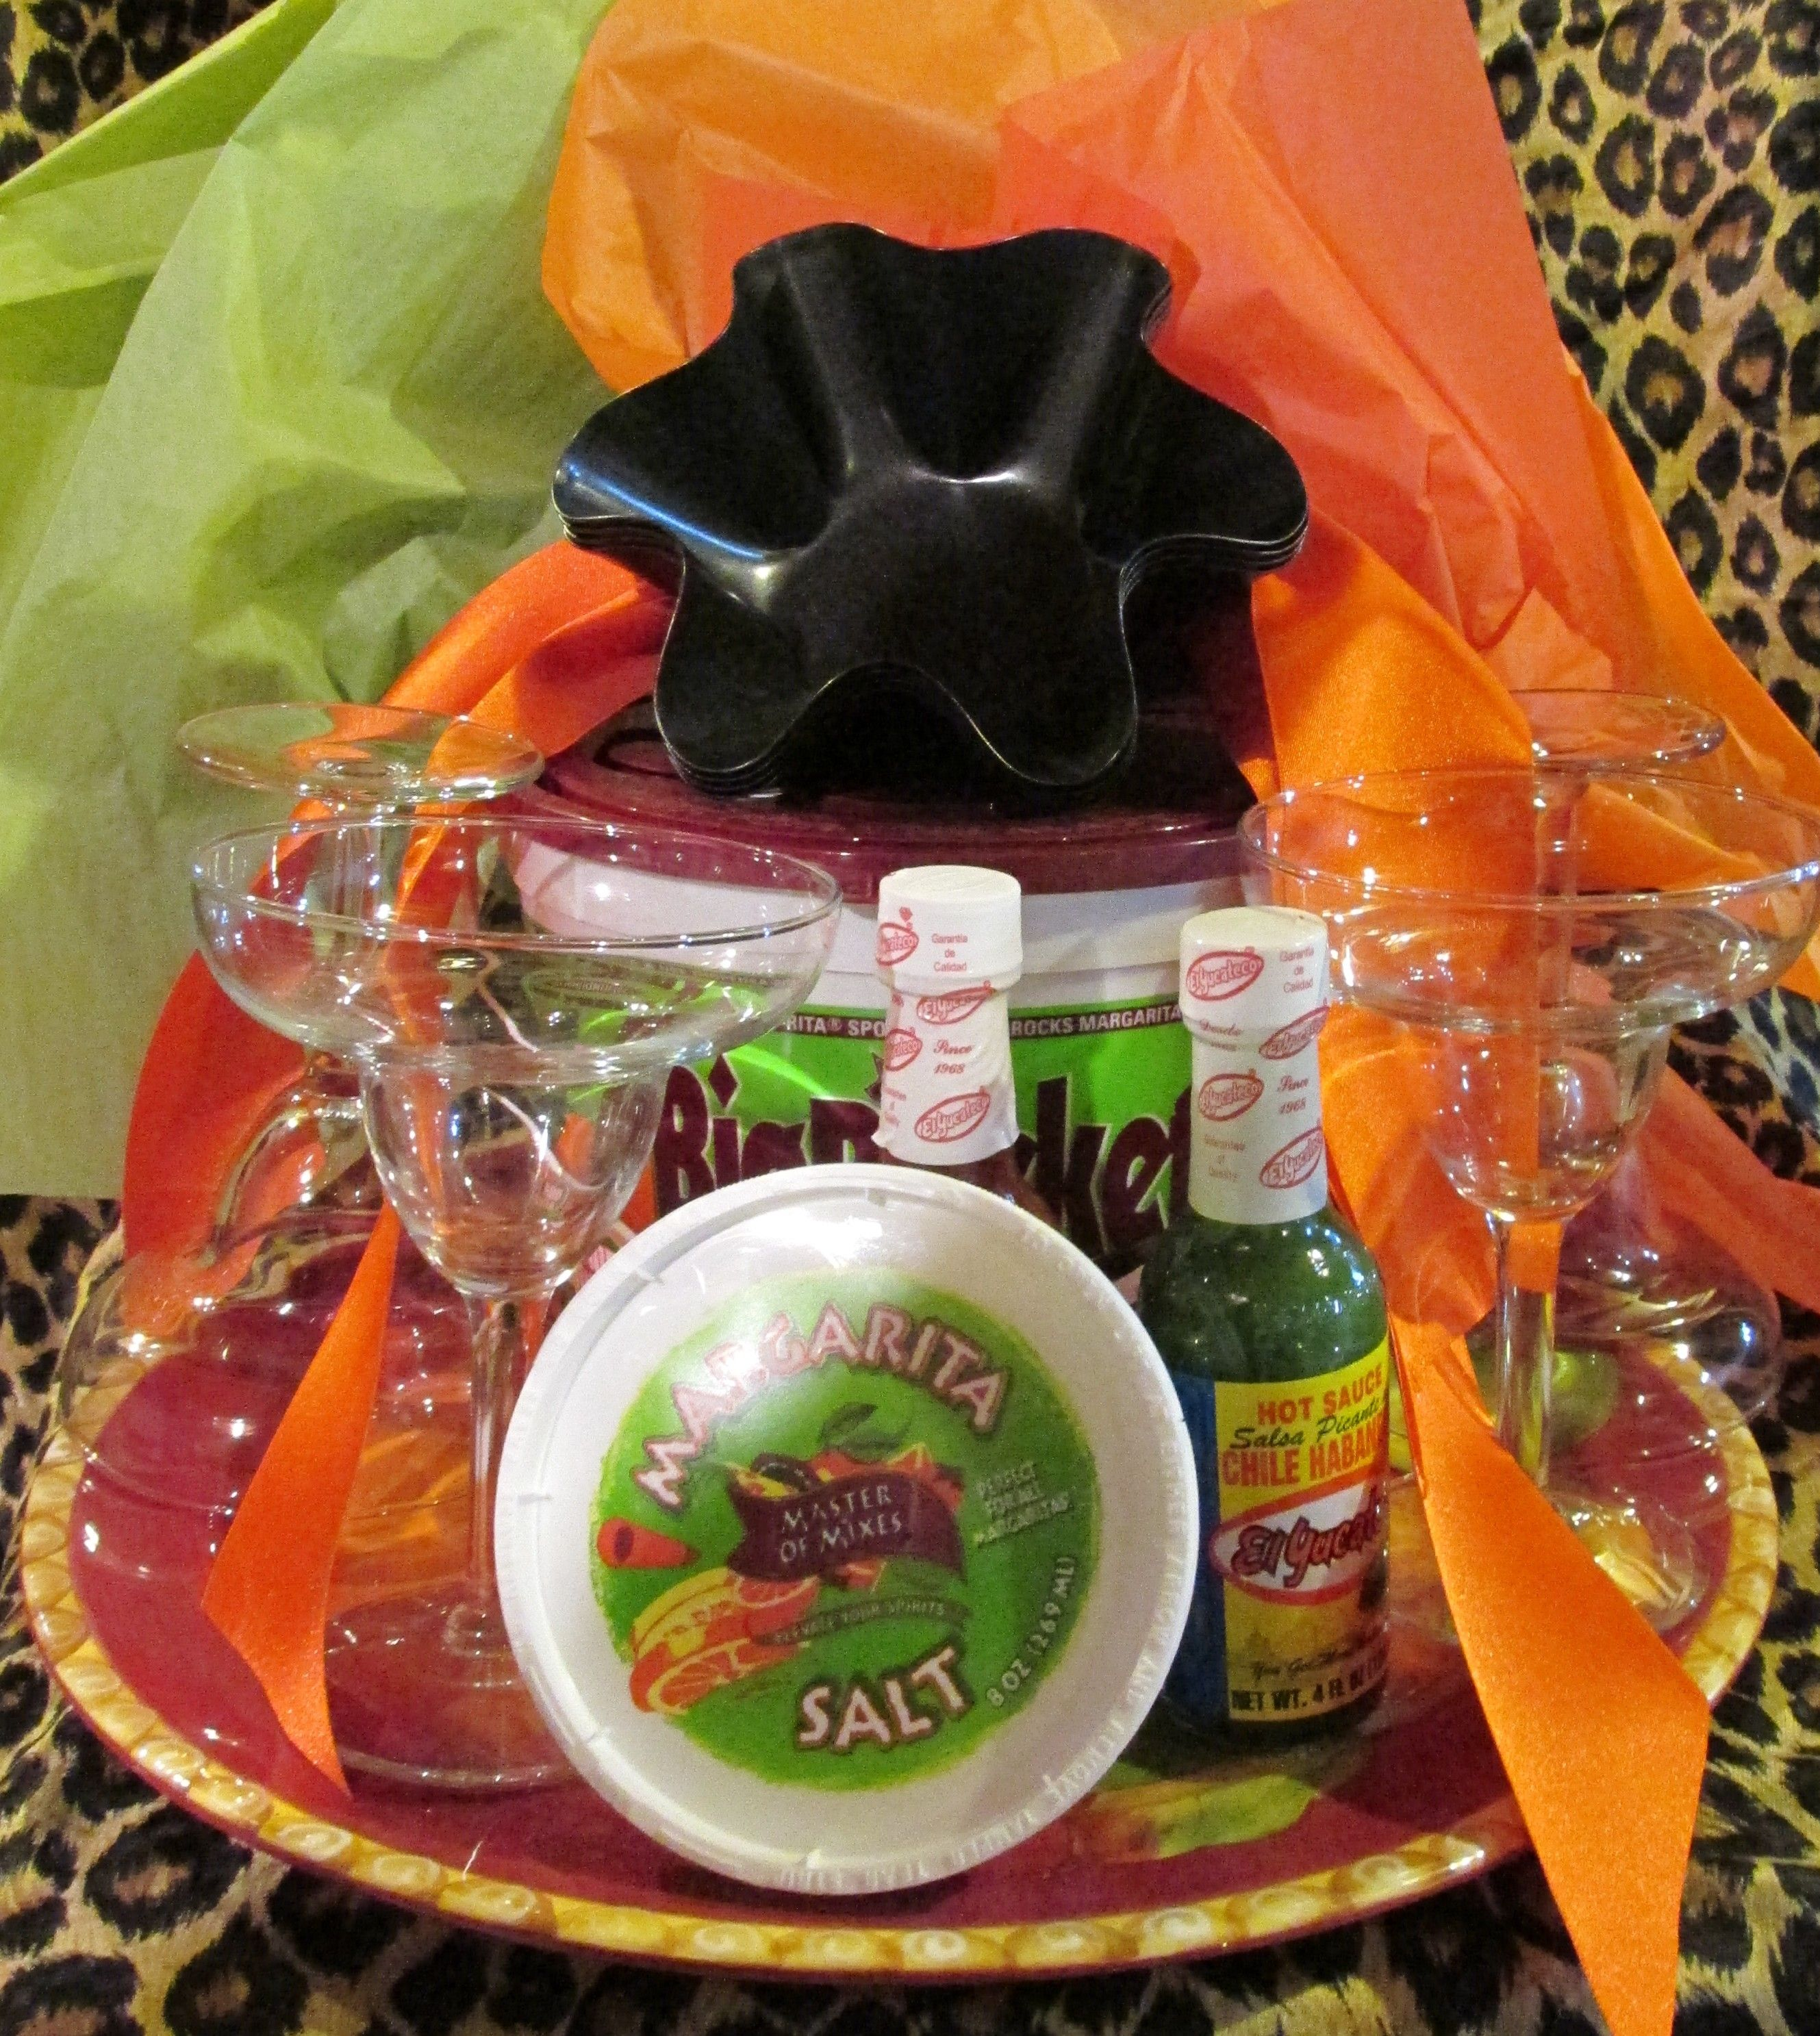 One of our Ole' gifting baskets.  It includes tortilla baking pans, margarita glasses, margarita mixer, hot and mild sauce, and margarita salt  all in a beautiful Spain-inspired  ceramic bowl!  $50 at www.kikiskache.com